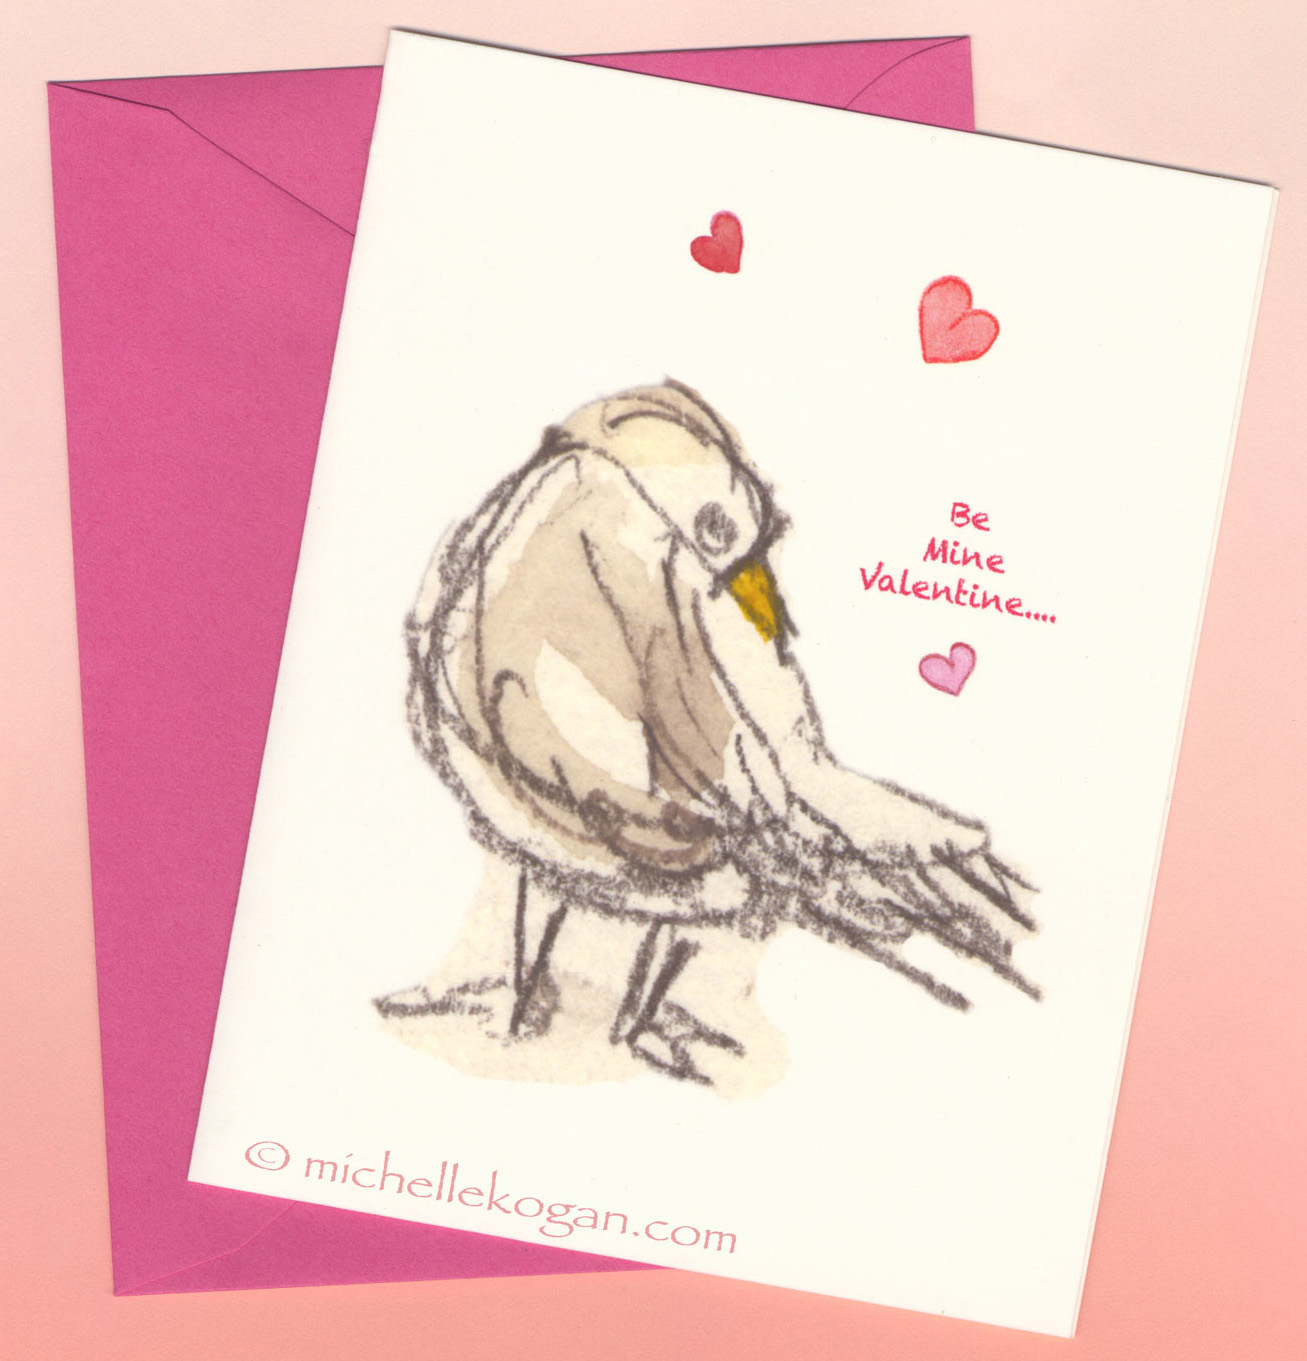 A Sweet Valentine Card from a feathered friend Michelle Kogan – Sweet Valentine Card